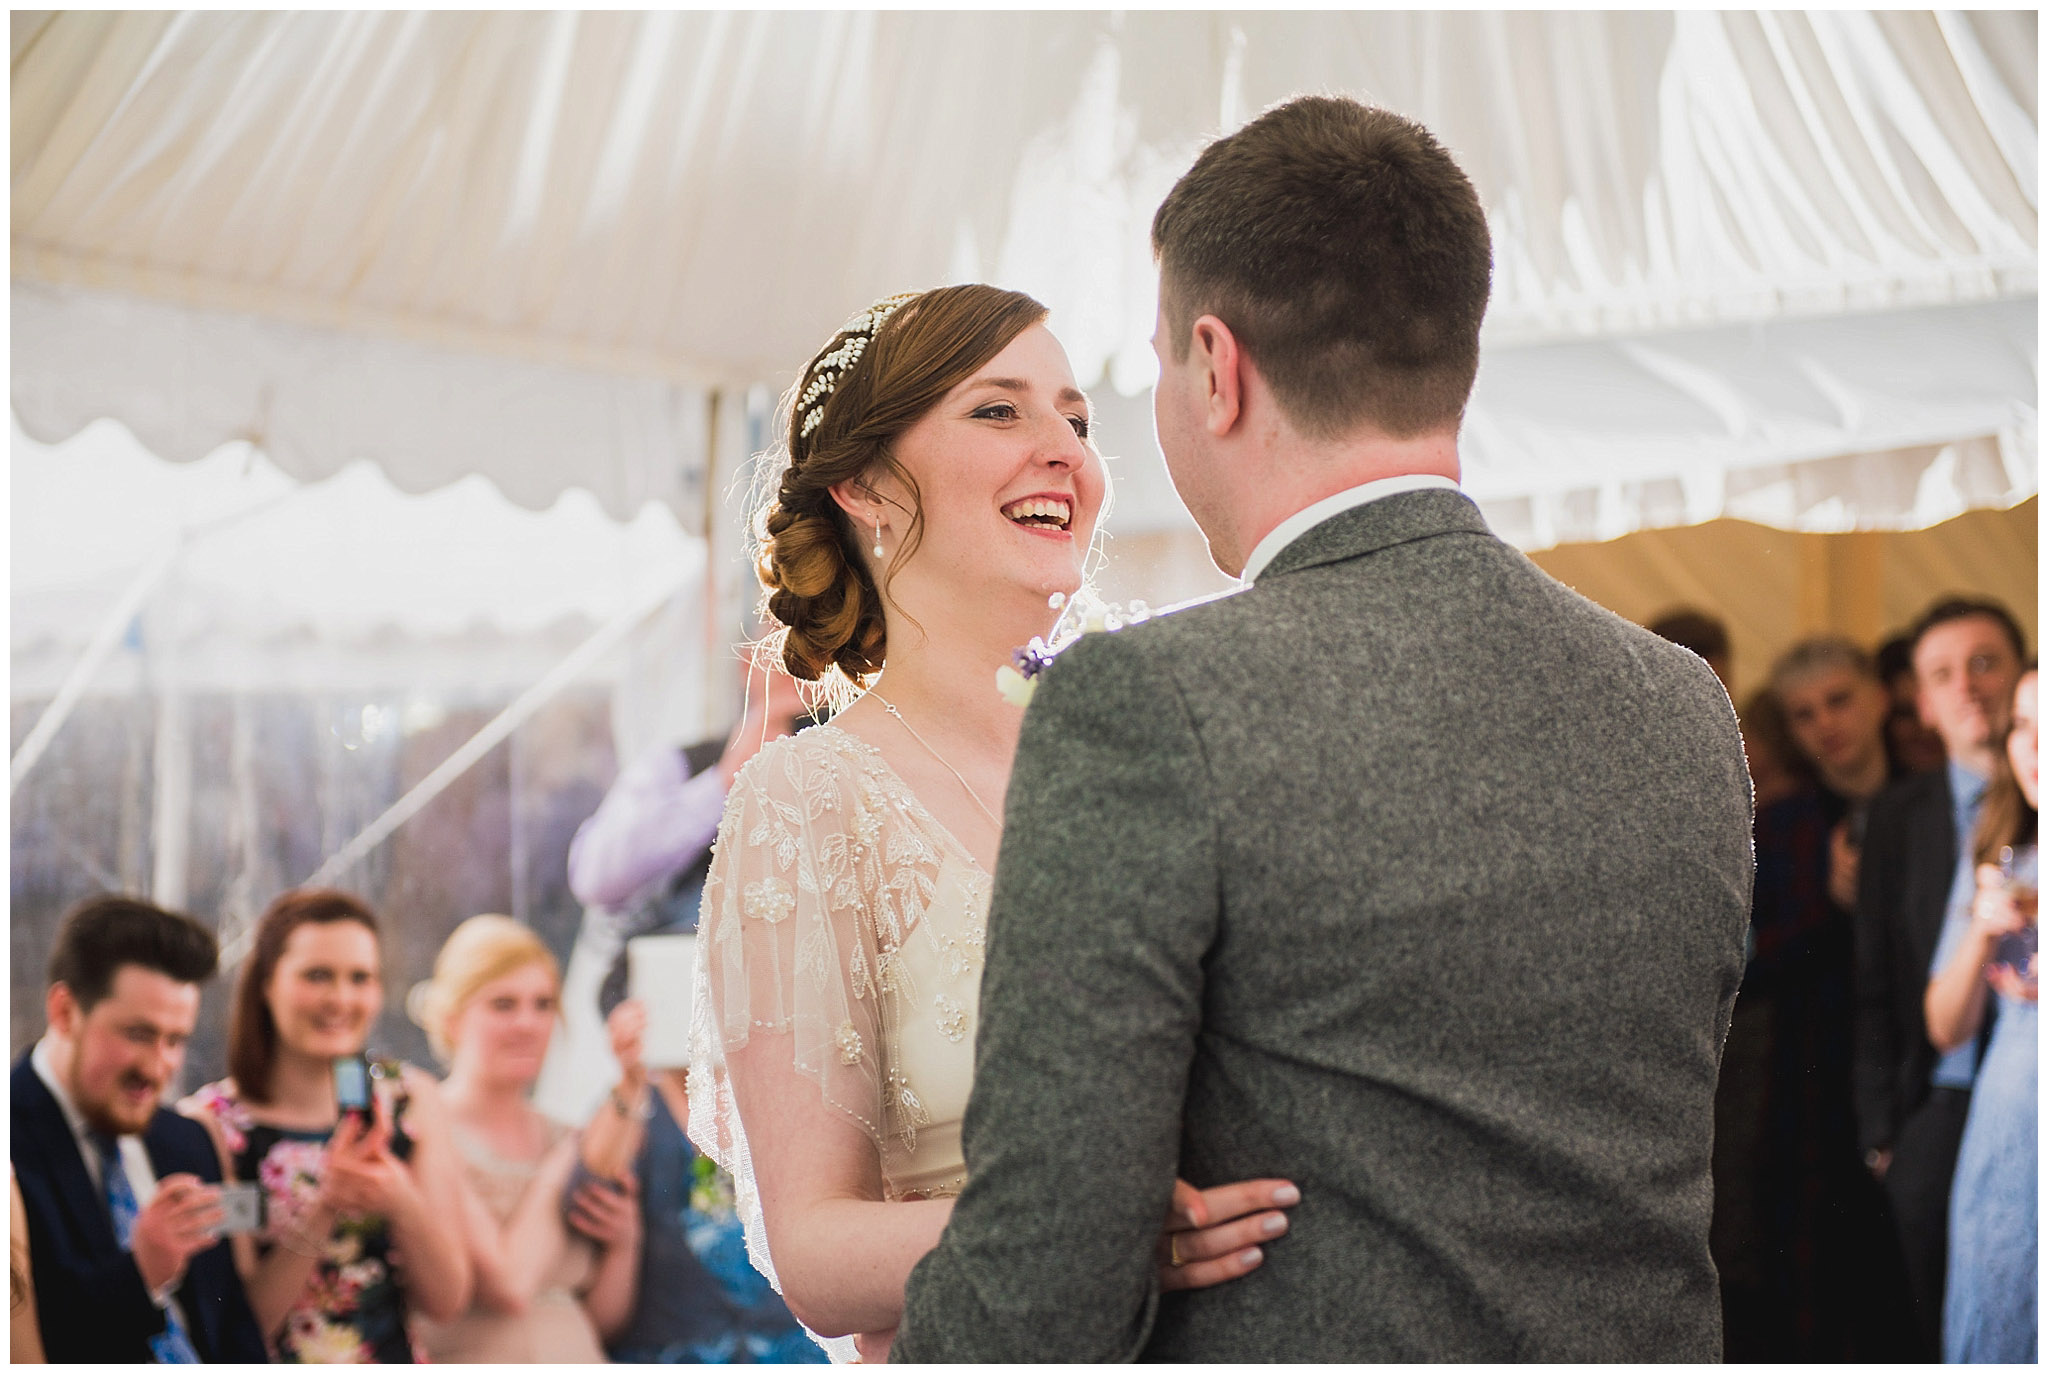 Sarah-&-Dan-The-Old-Vicarage-Wedding-Venue-Dorset-Photographer-41